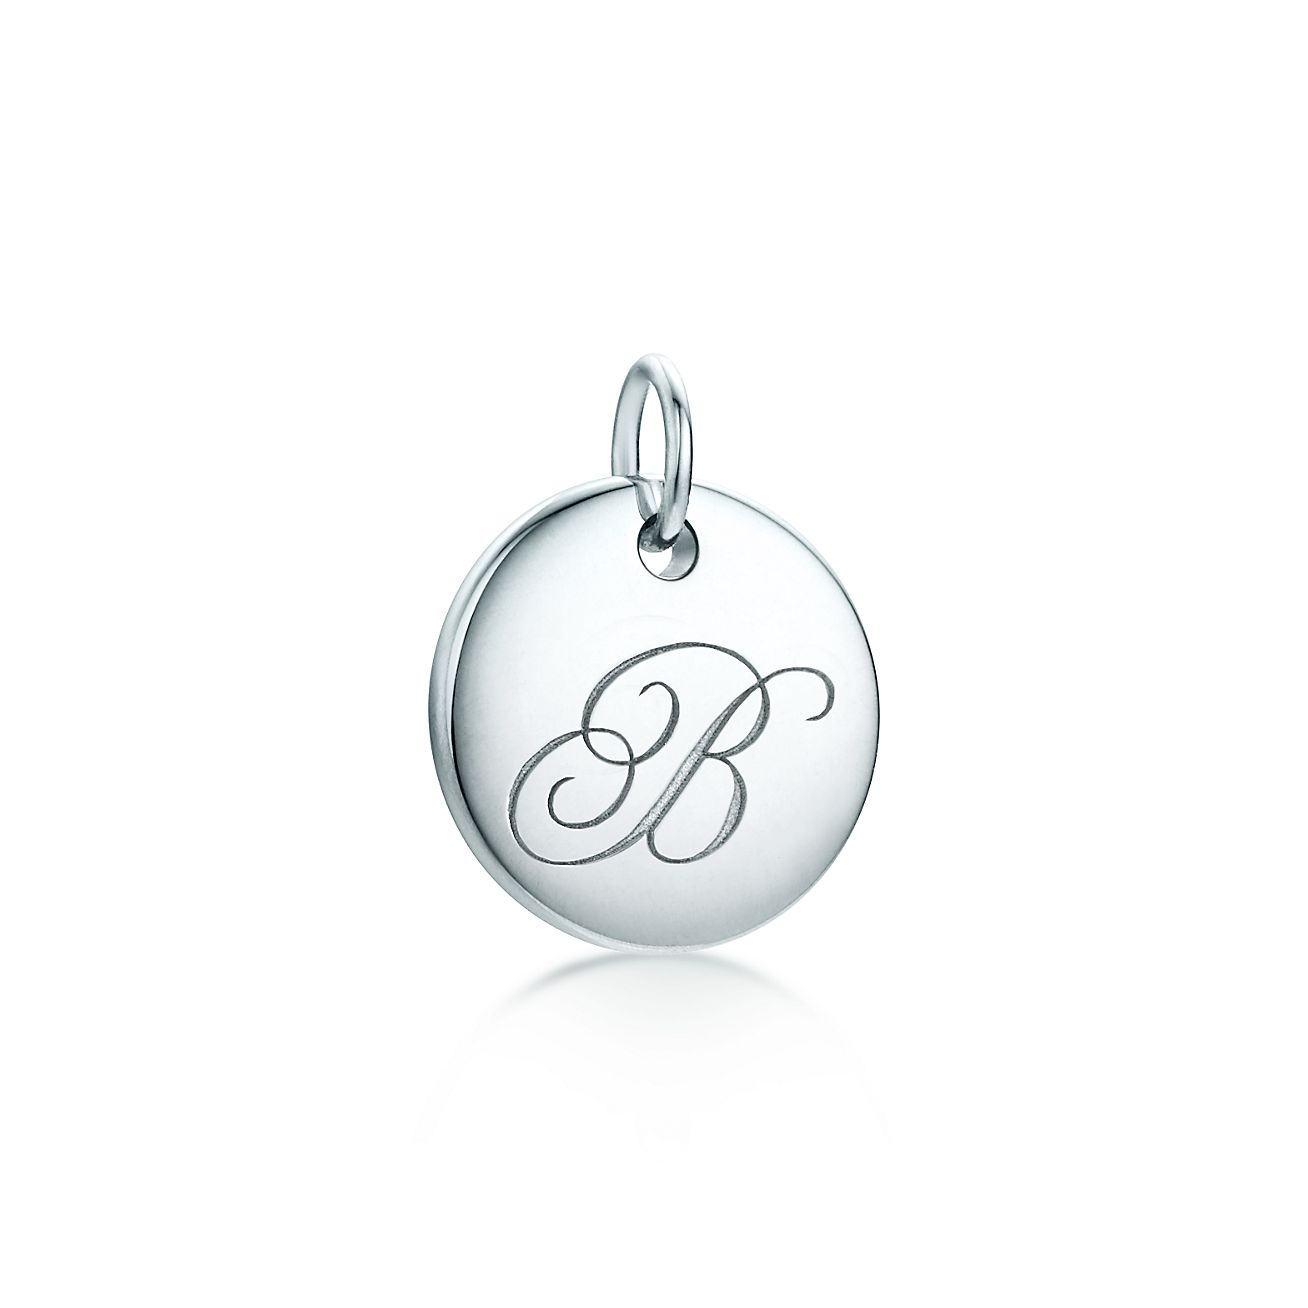 Tiffany Notes alphabet disc charm in silver, small Letters A-Z available - Size R Tiffany & Co.